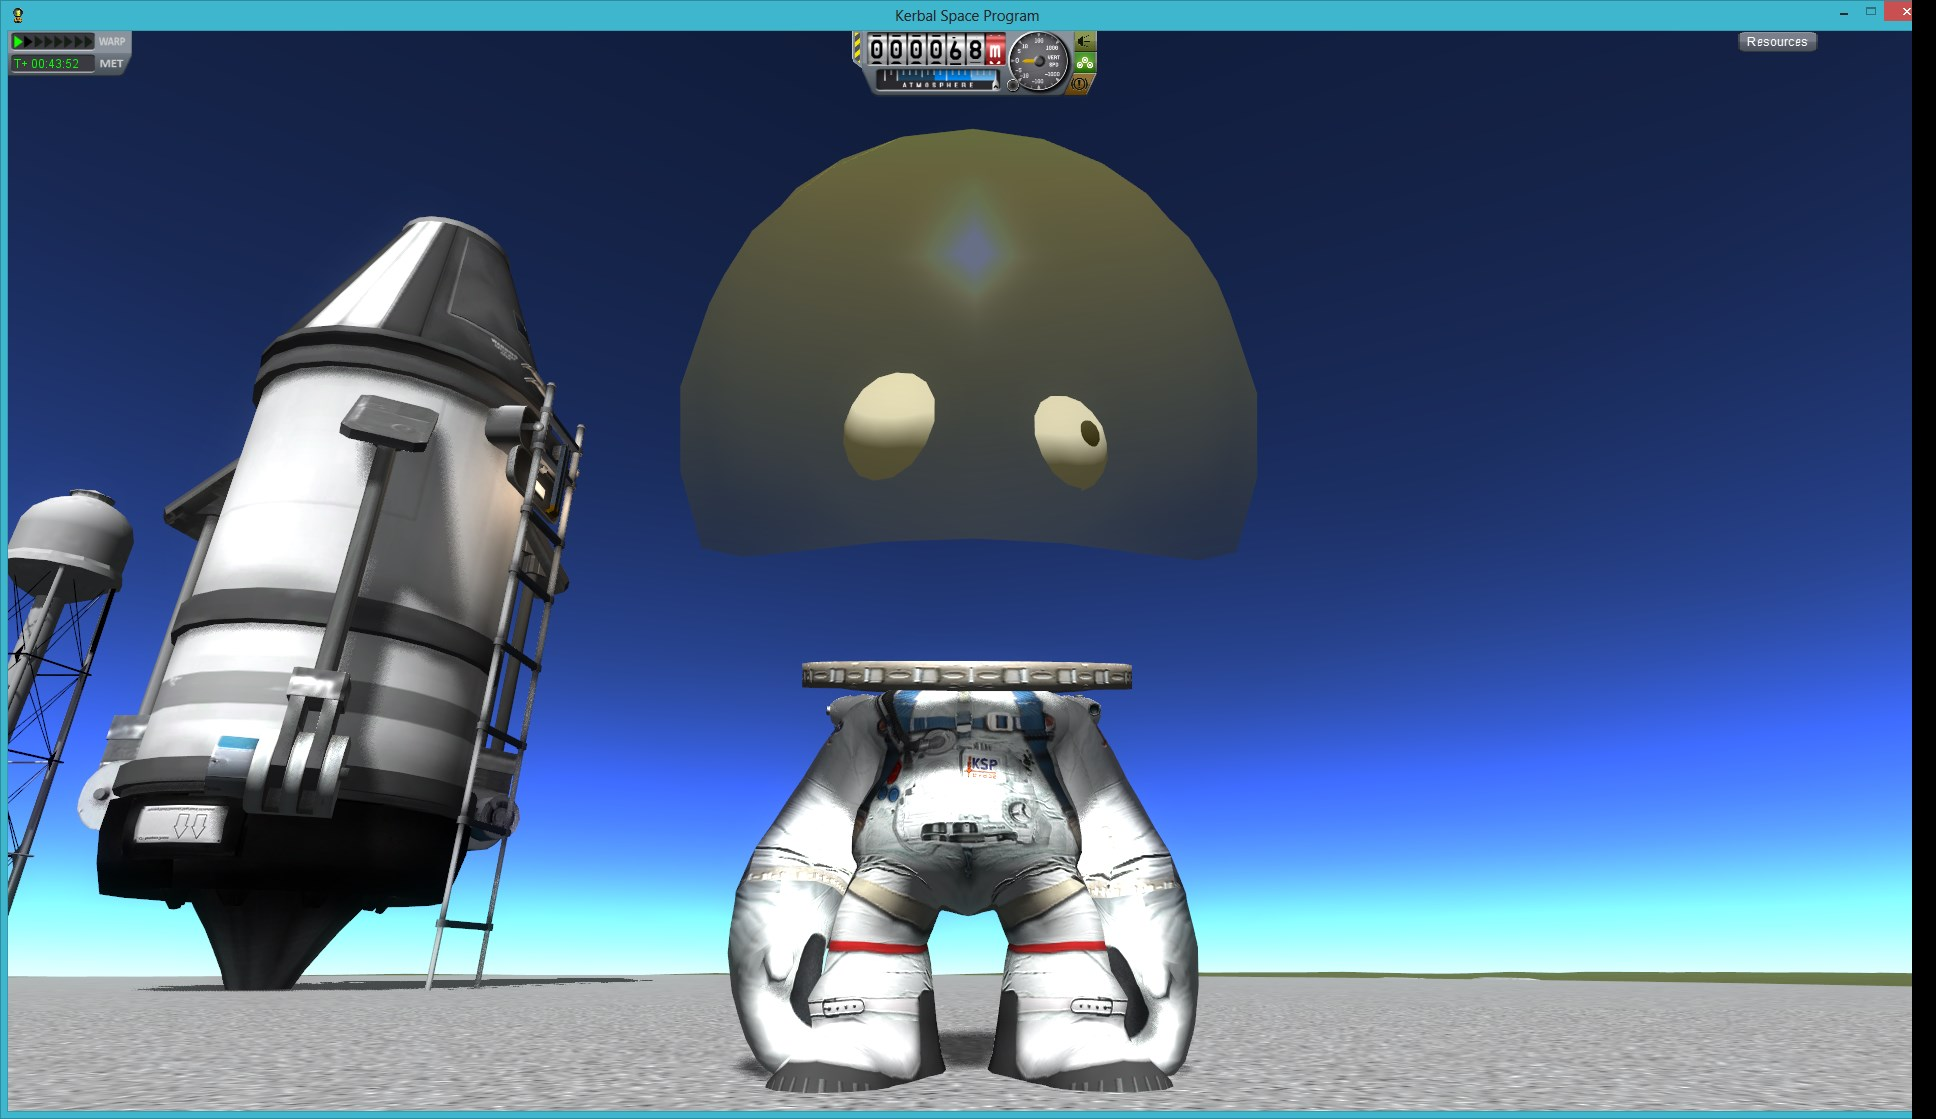 tylo kerbal space program face - photo #37